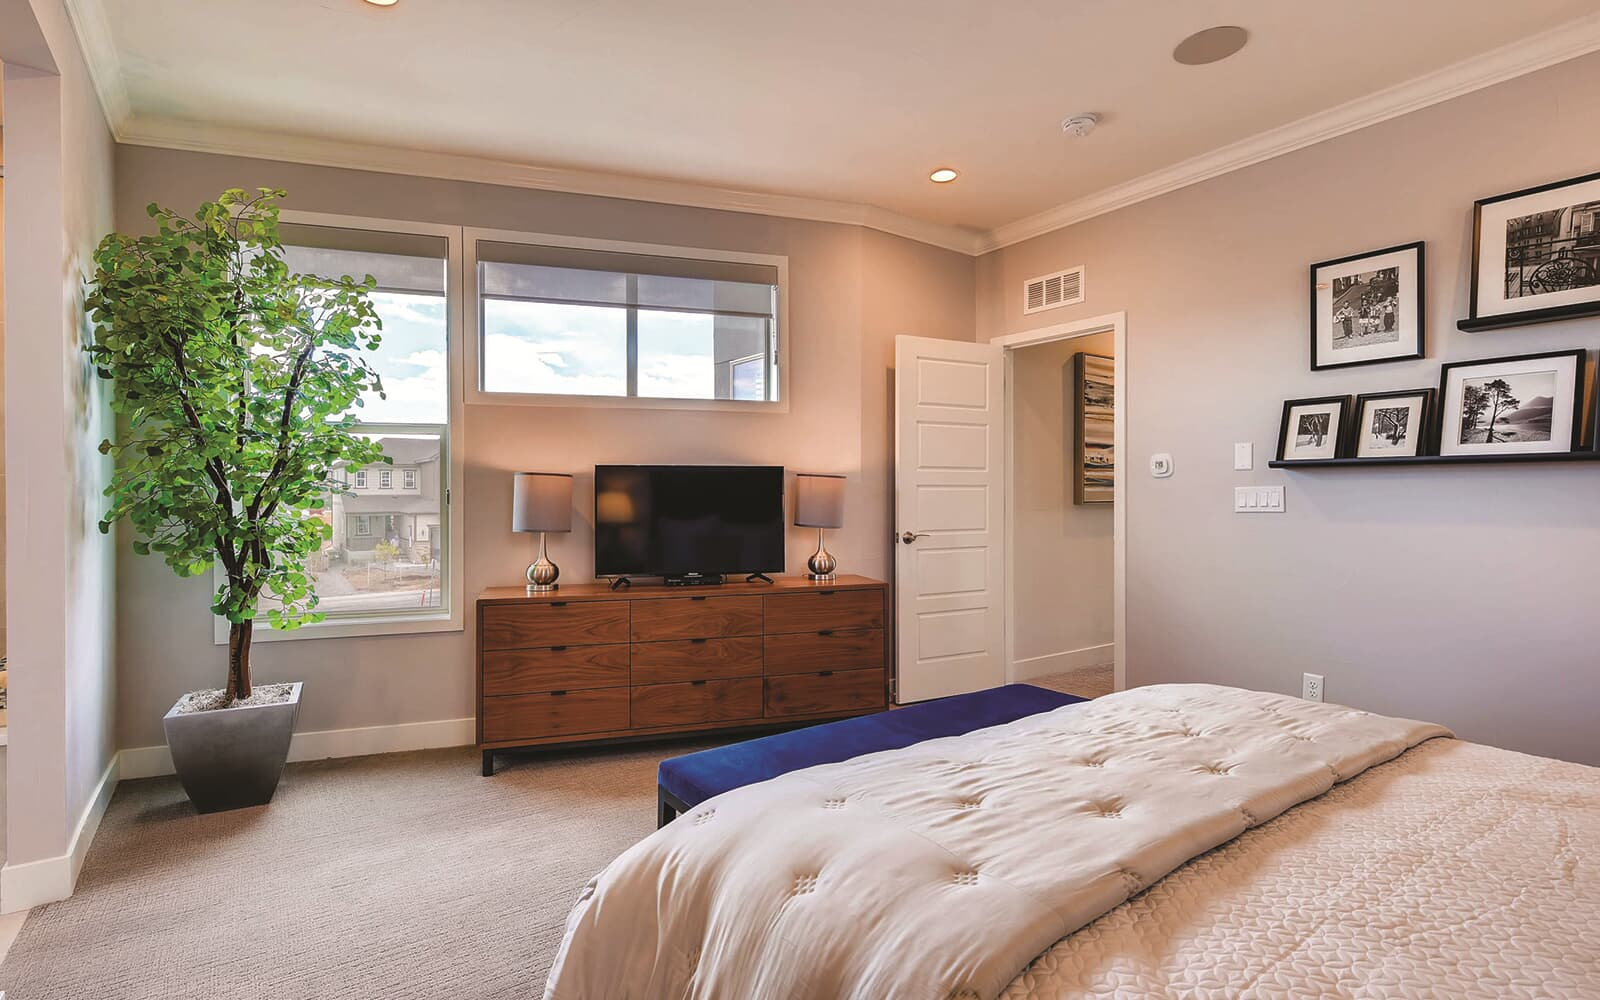 Signature-Four-Model-Interior-Master-Bedroom-One-Sterling-Ranch-Denver-Colorado